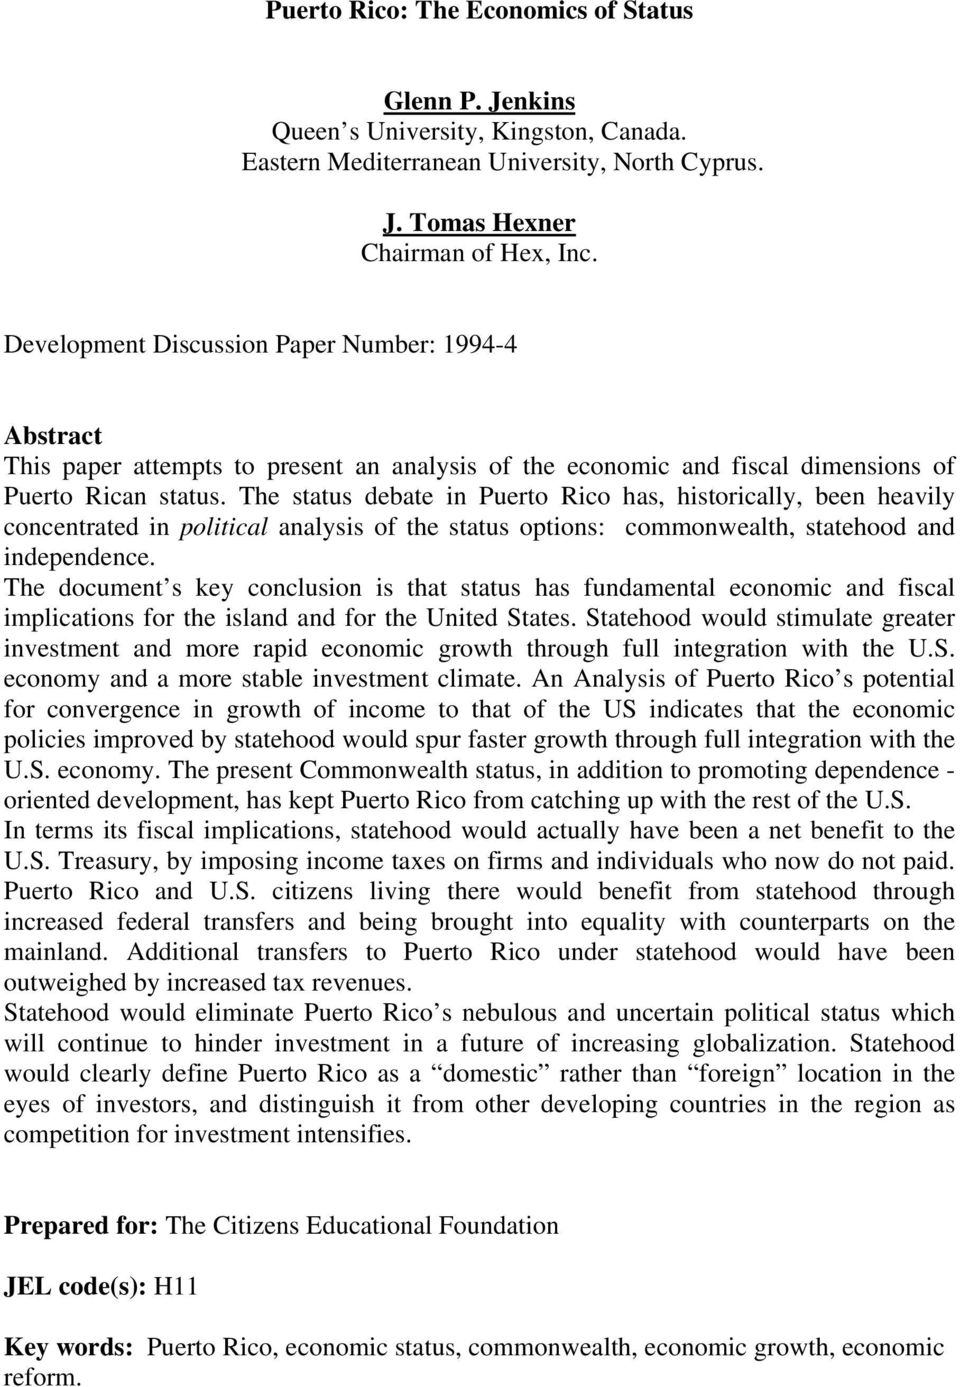 The status debate in Puerto Rico has, historically, been heavily concentrated in political analysis of the status options: commonwealth, statehood and independence.